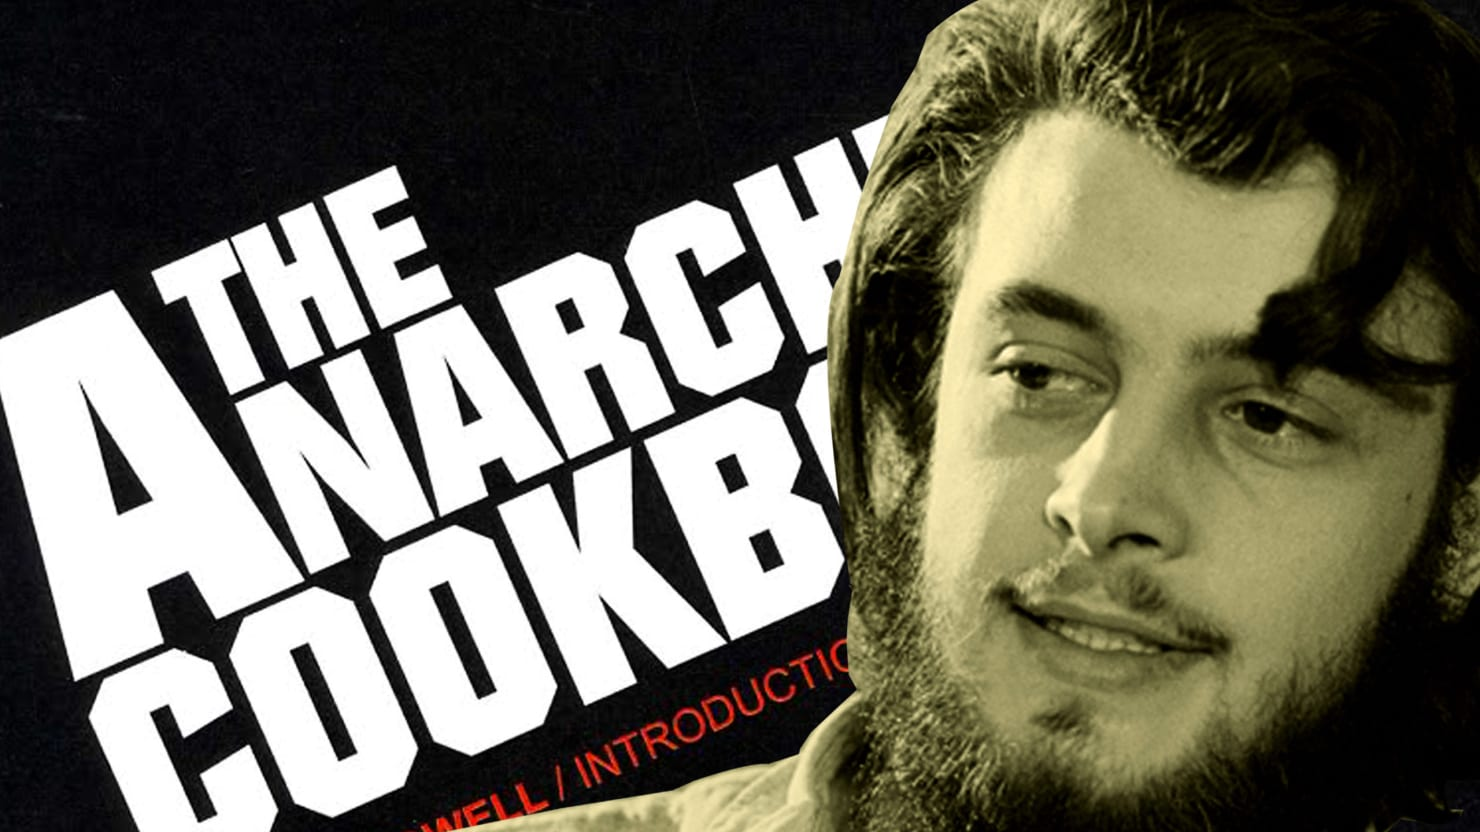 'The Anarchist Cookbook' Author's Last Confession: 'It Fills Me with Remorse'